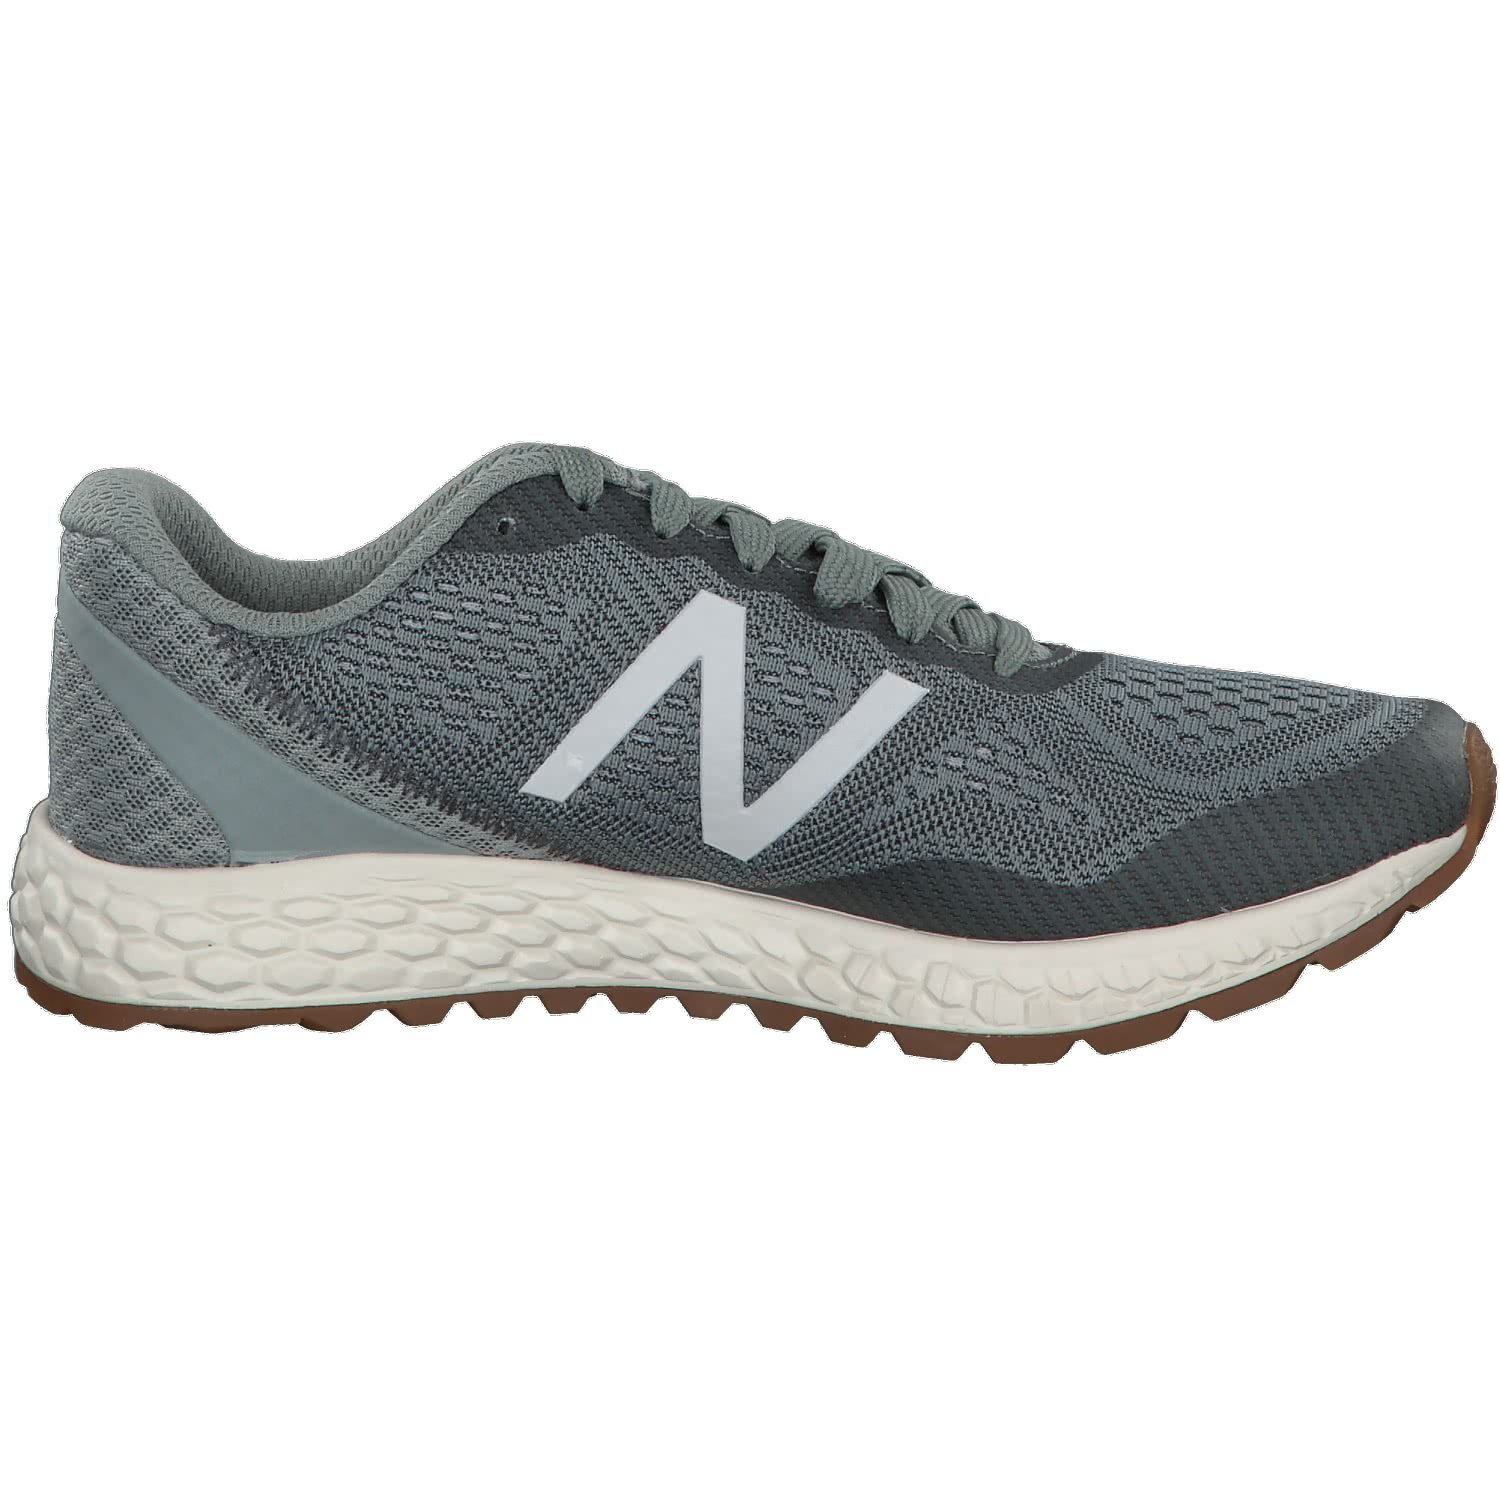 New Balance Women's Gobiv2 Running Shoe B0751DK896 7 D US|Seed With Grove